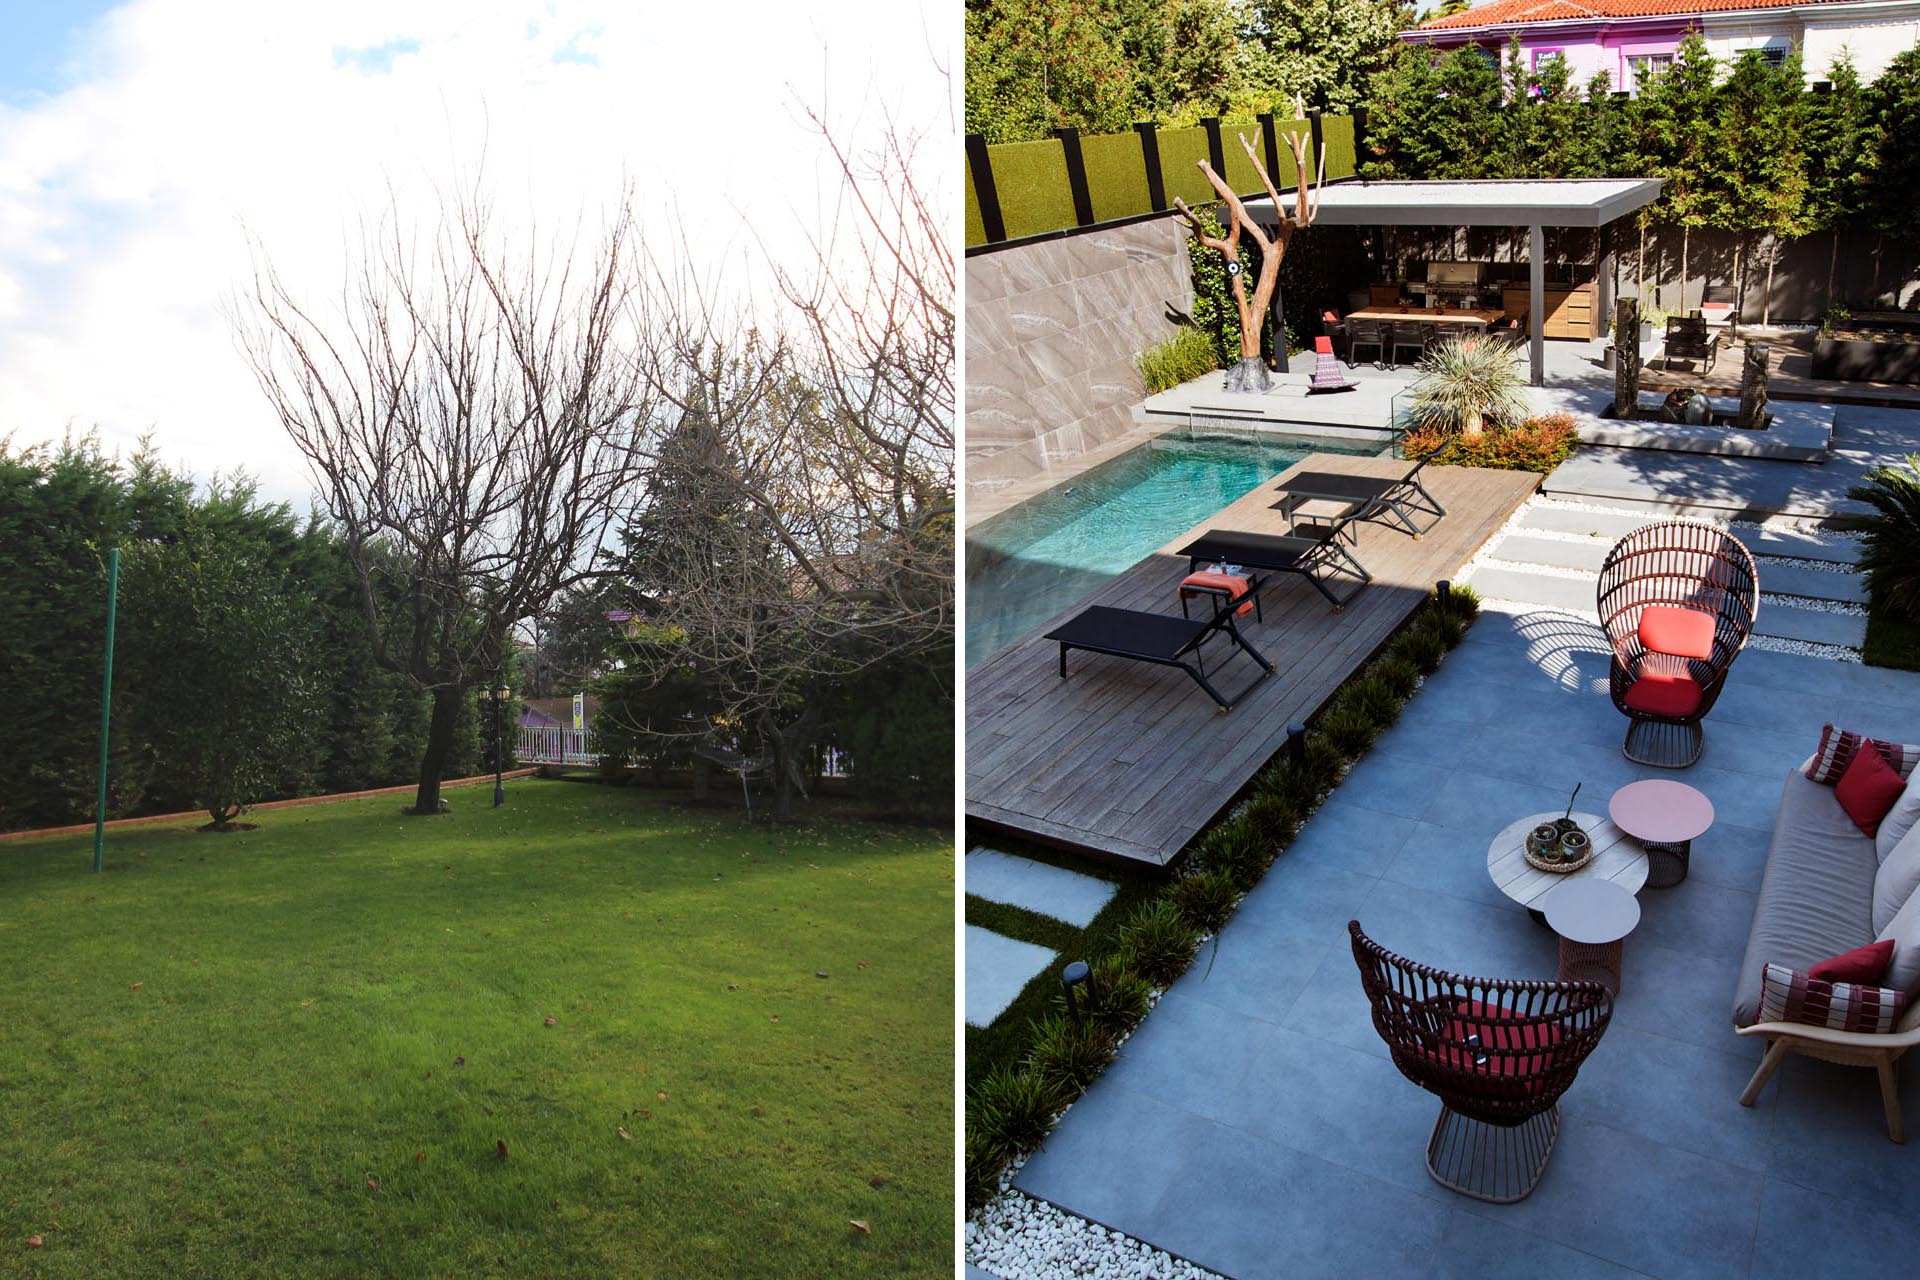 Before & After – An Extensive Yard Renovation For This House In Turkey